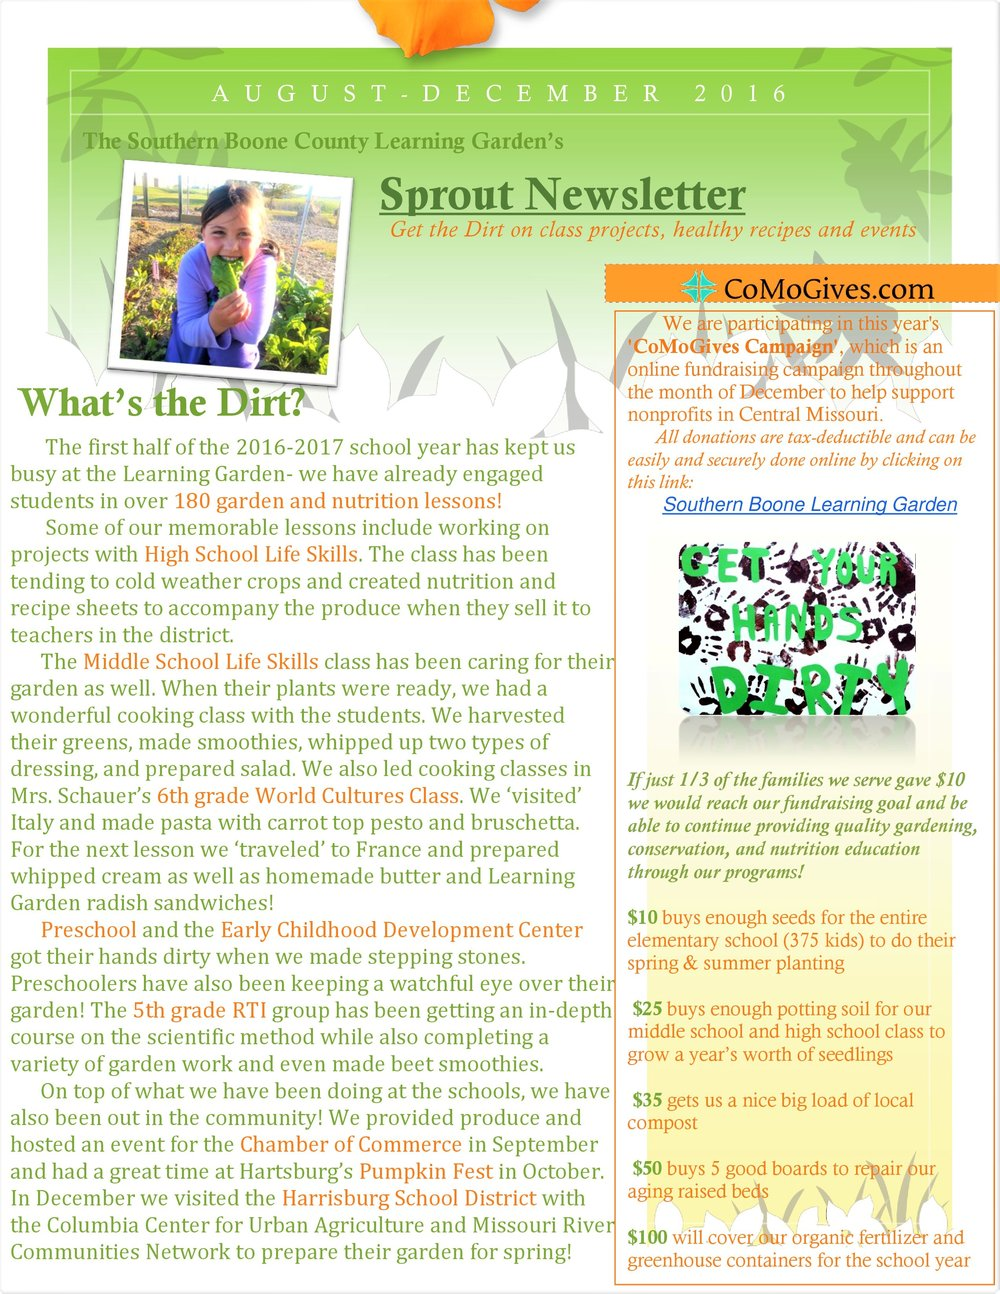 NewsletterPage1.jpg